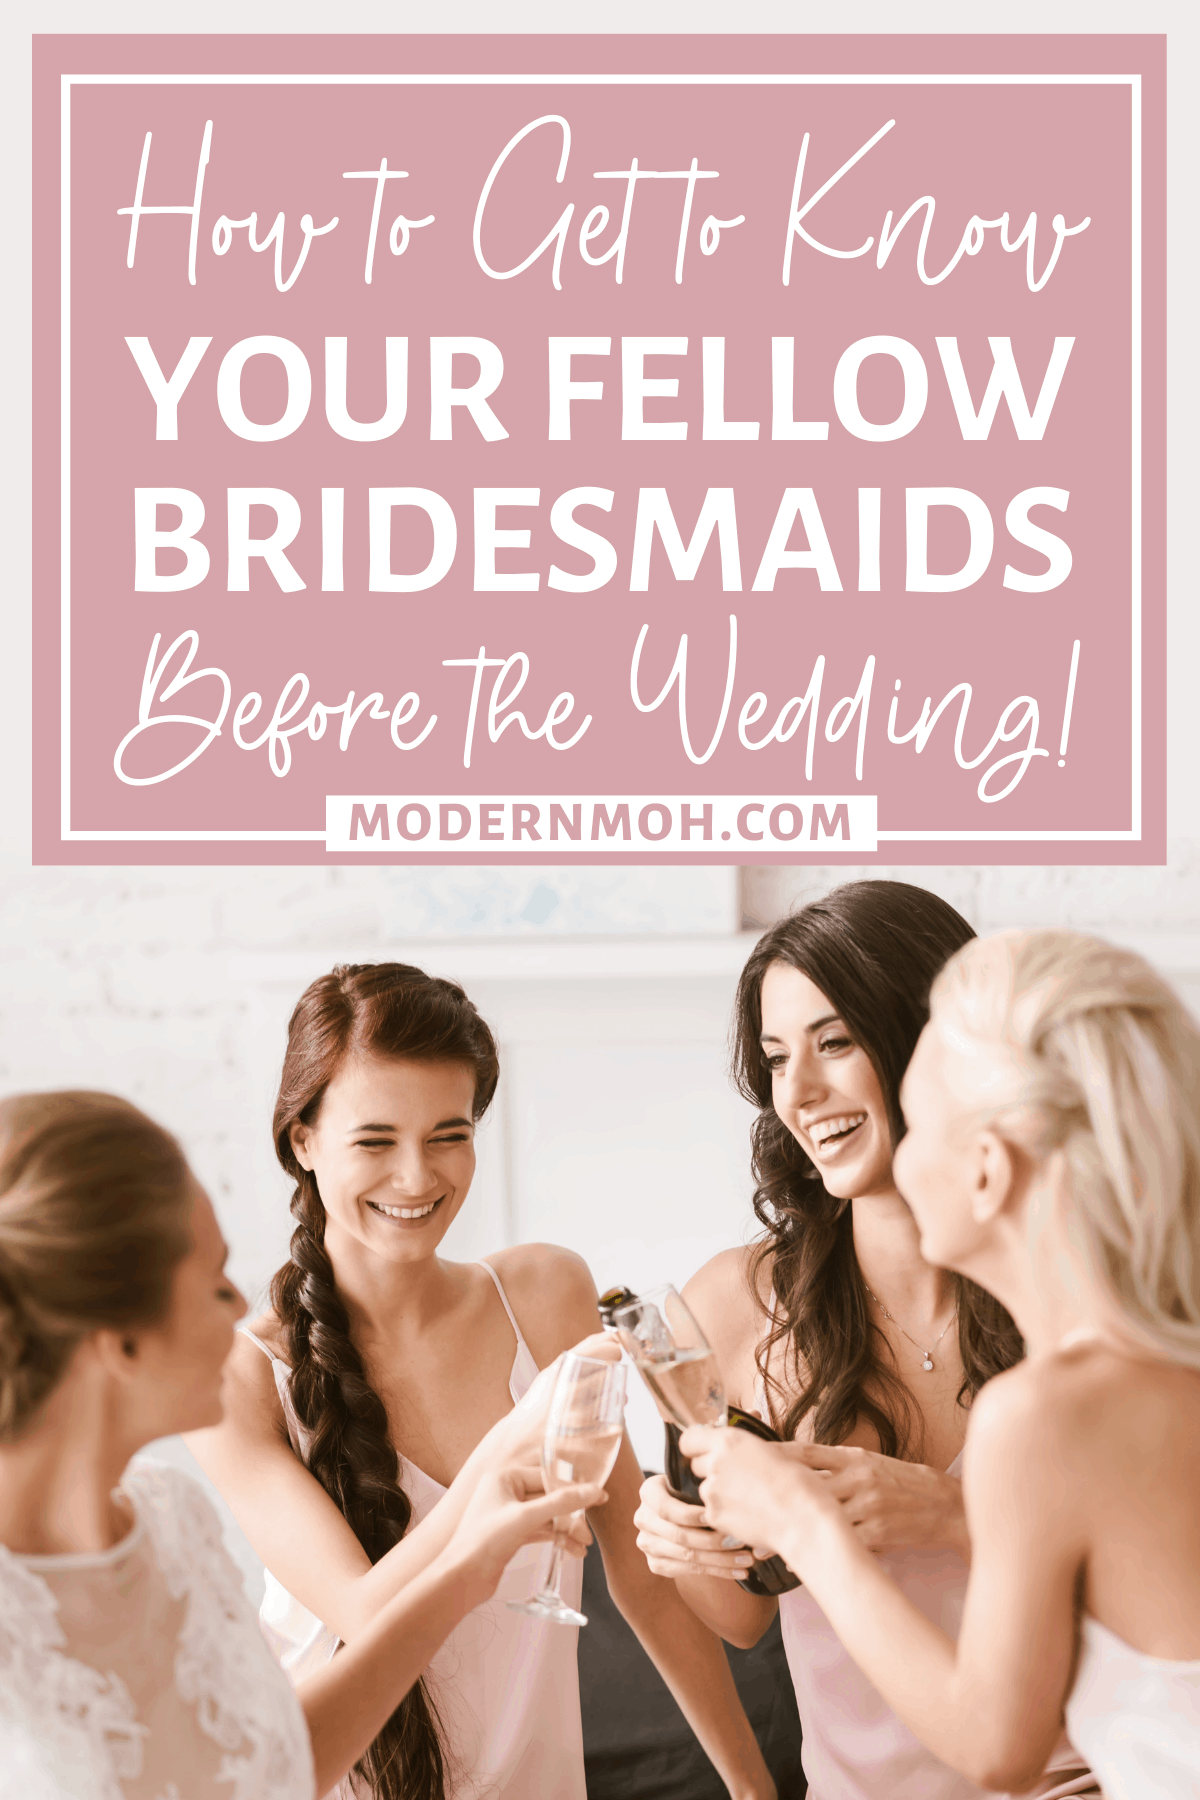 4 Ways to Get to Know Your Fellow Bridesmaids